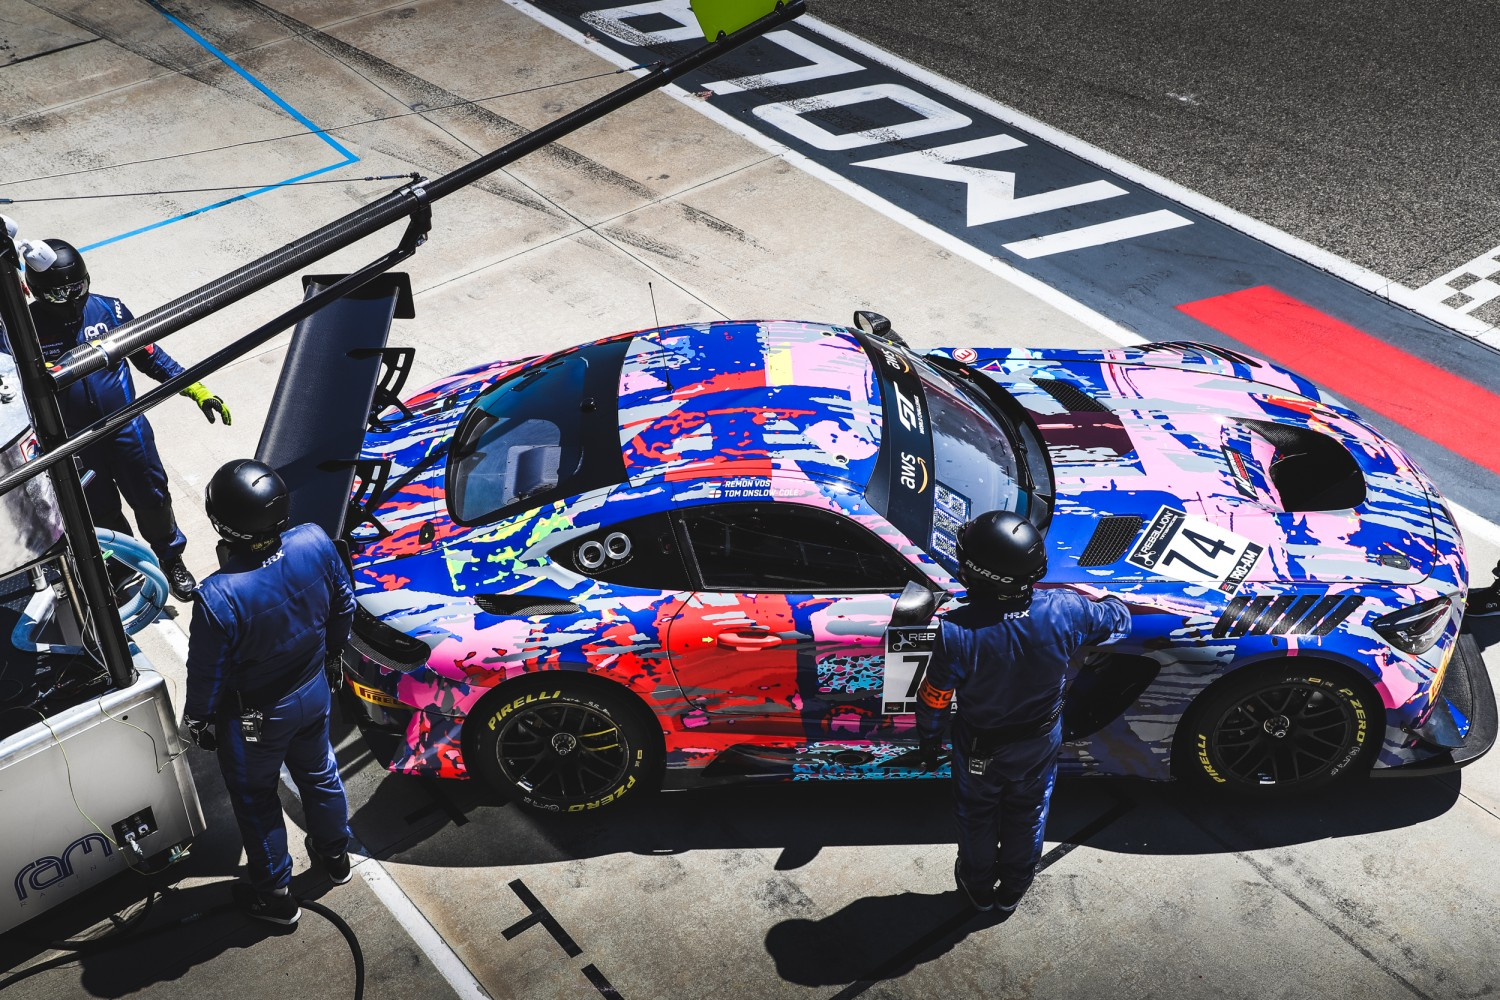 #74 Ram Racing GBR Mercedes-AMG GT3 Pro-Am Cup Remon Vos NDL - - Tom Onslow-Cole GBR, Pit Lane, Pre-qualifying  | SRO / Patrick Hecq Photography